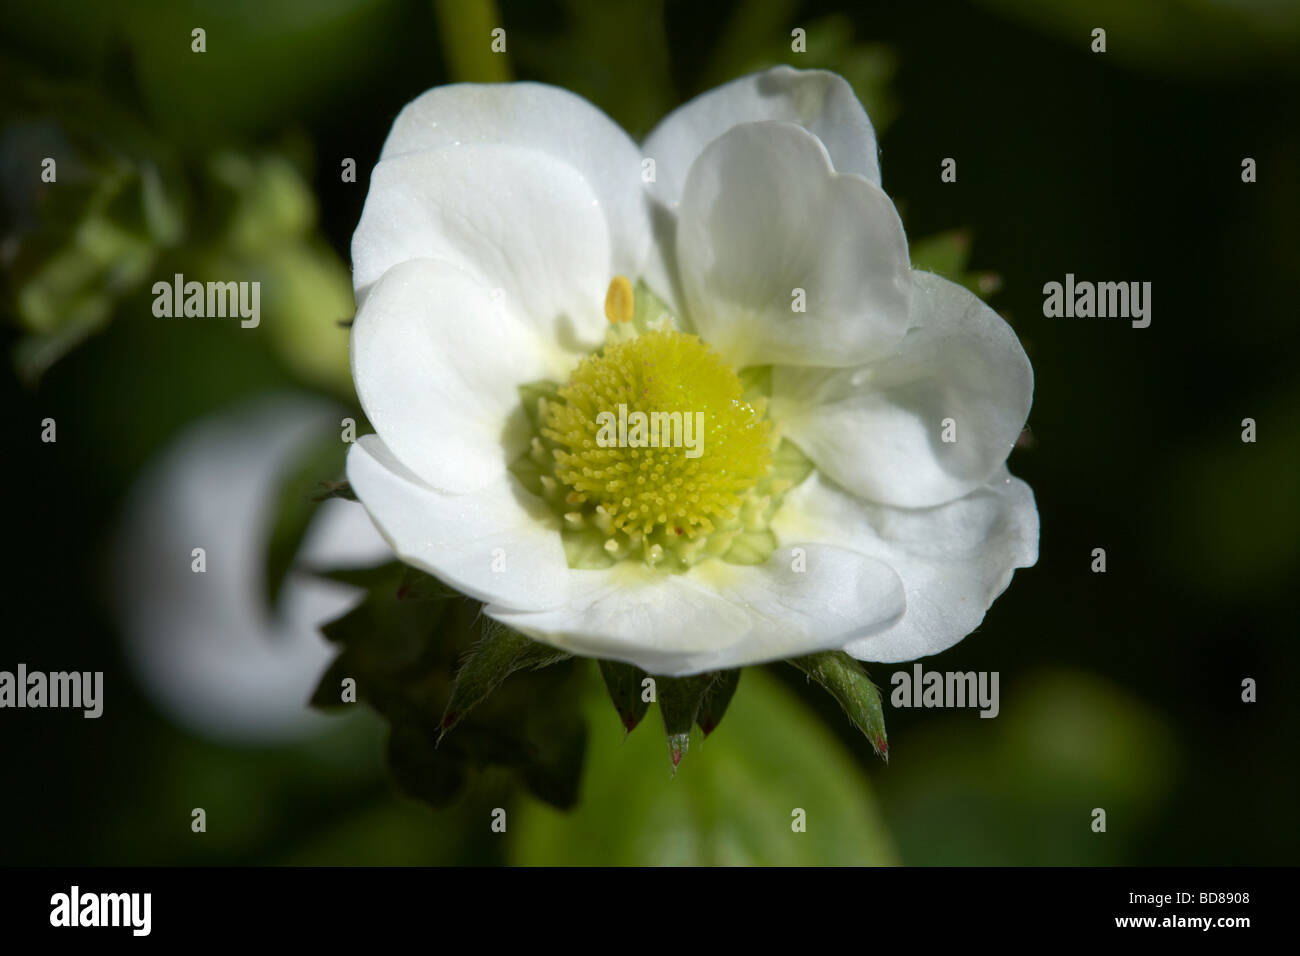 flower of the loran variety of garden strawberry fragaria x ananassa growing in a garden in the uk Stock Photo